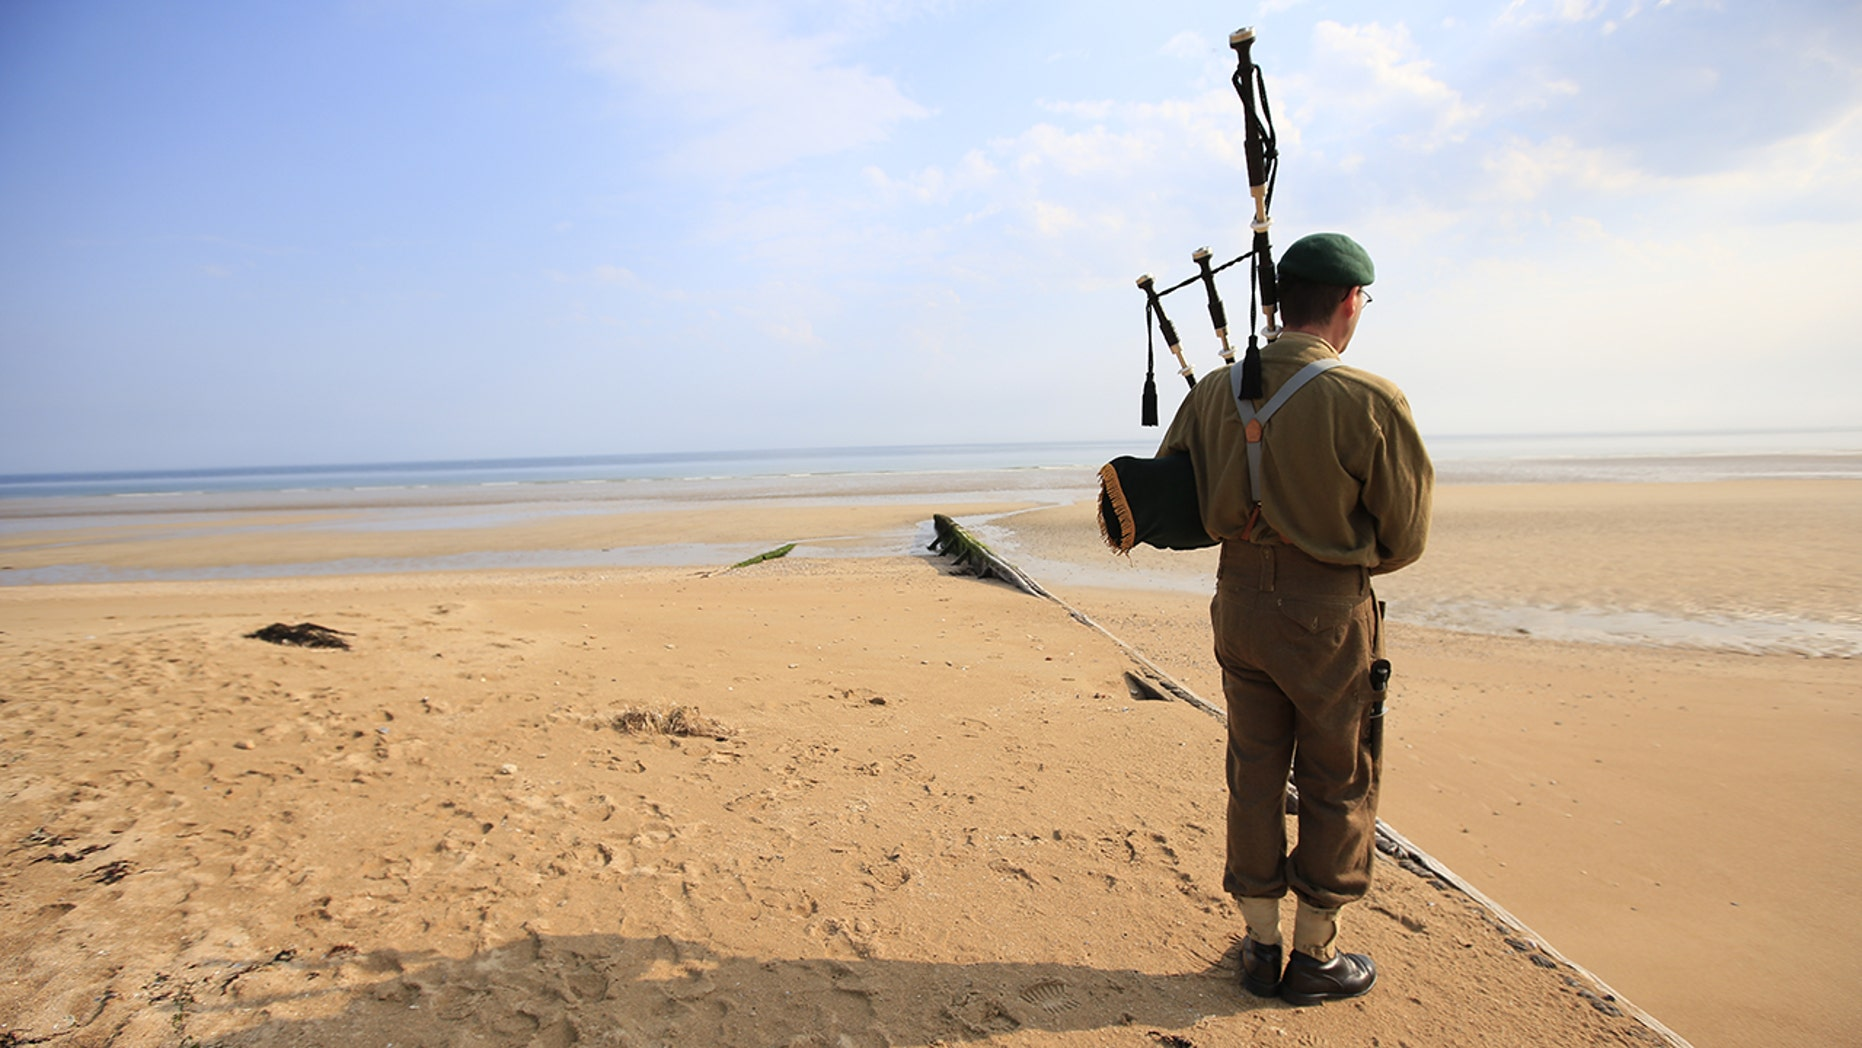 A planned concert on Sword beach on Normandy, France for the 75th anniversary of D-Day has drawn outrage from some veterans.